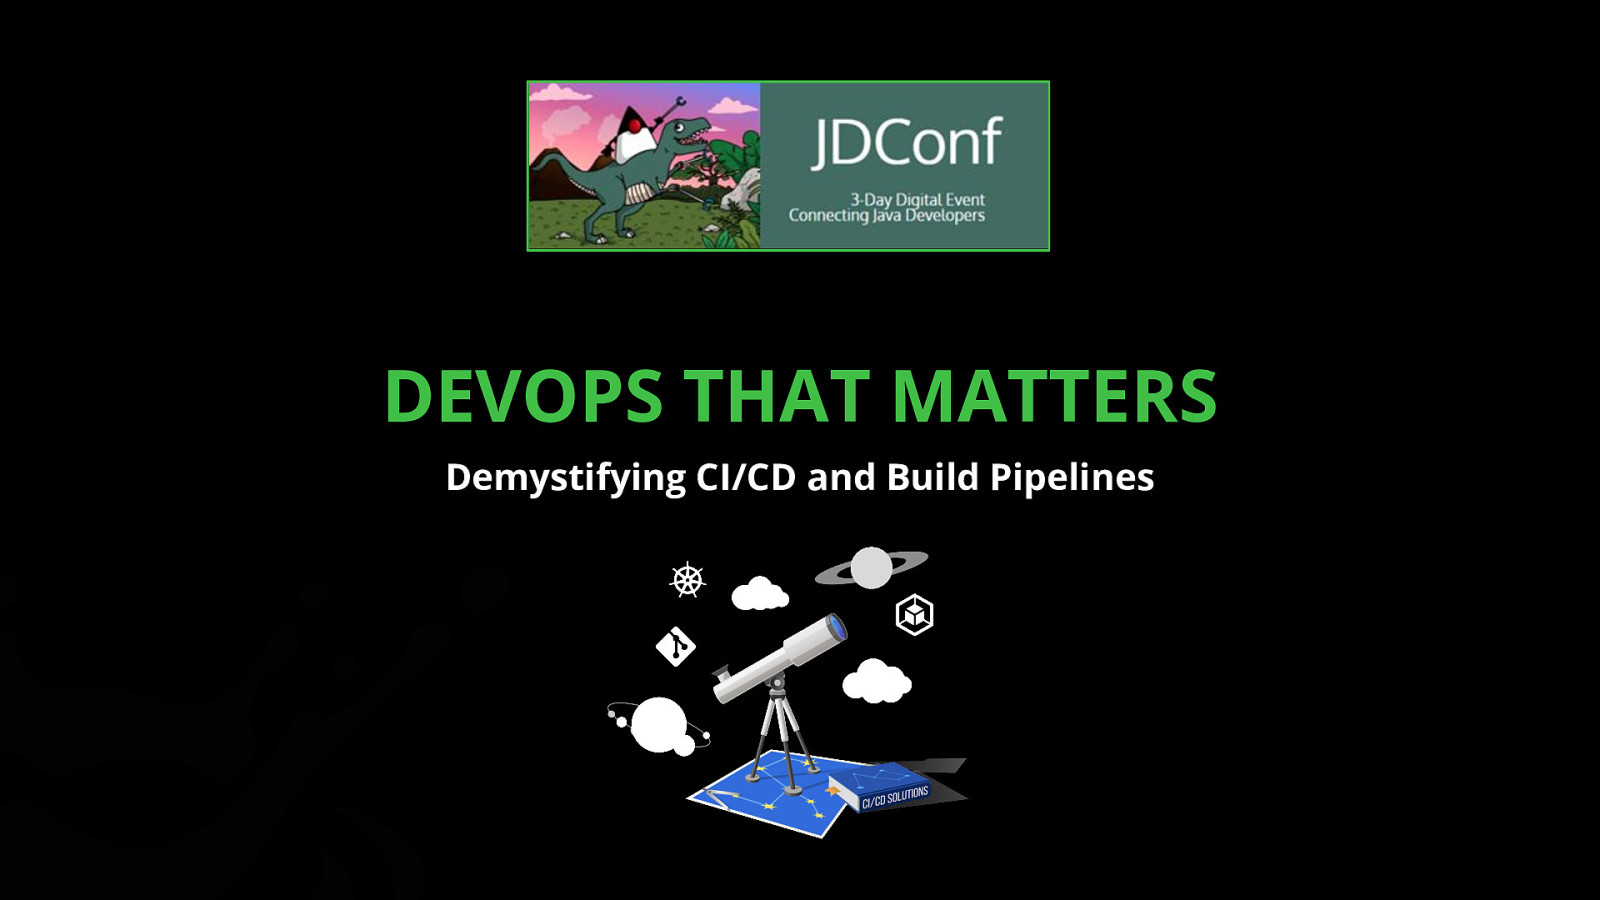 DevOps That Matters: Demystifying CI/CD and Build Pipelines